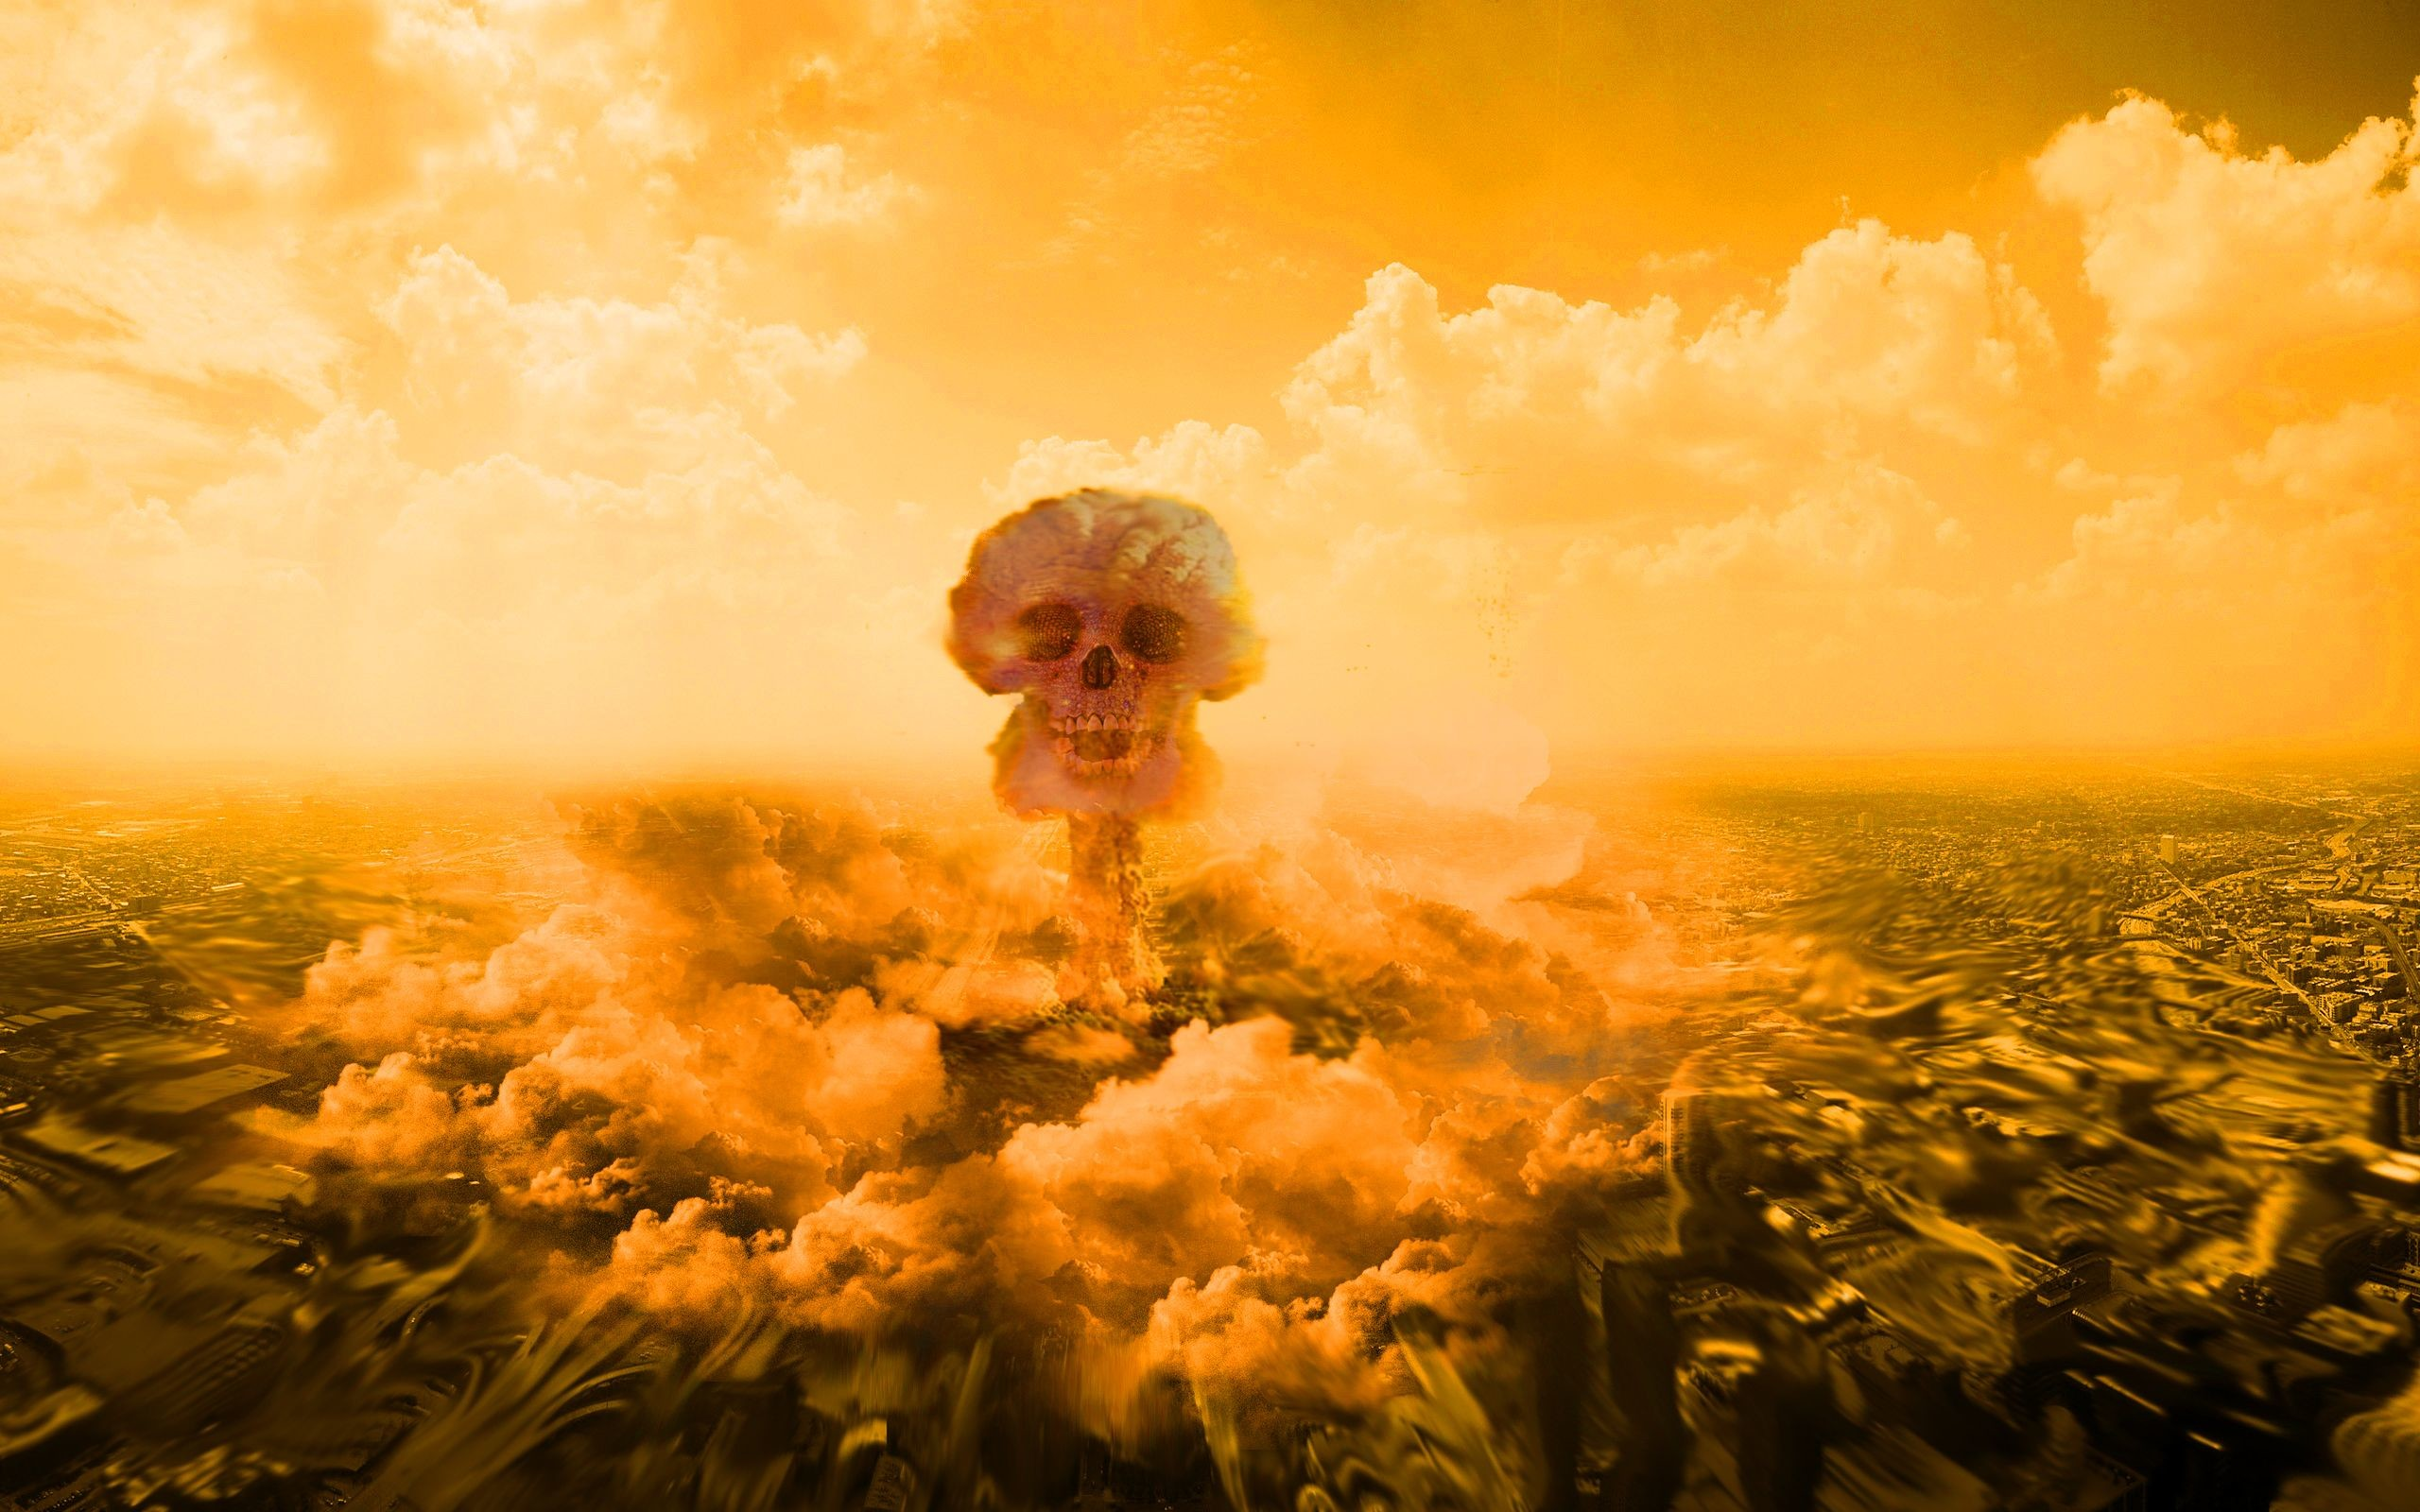 2560x1600 images of an eye with a mushroom cloud | skull mushroom cloud Wallpaper  Background | 59446